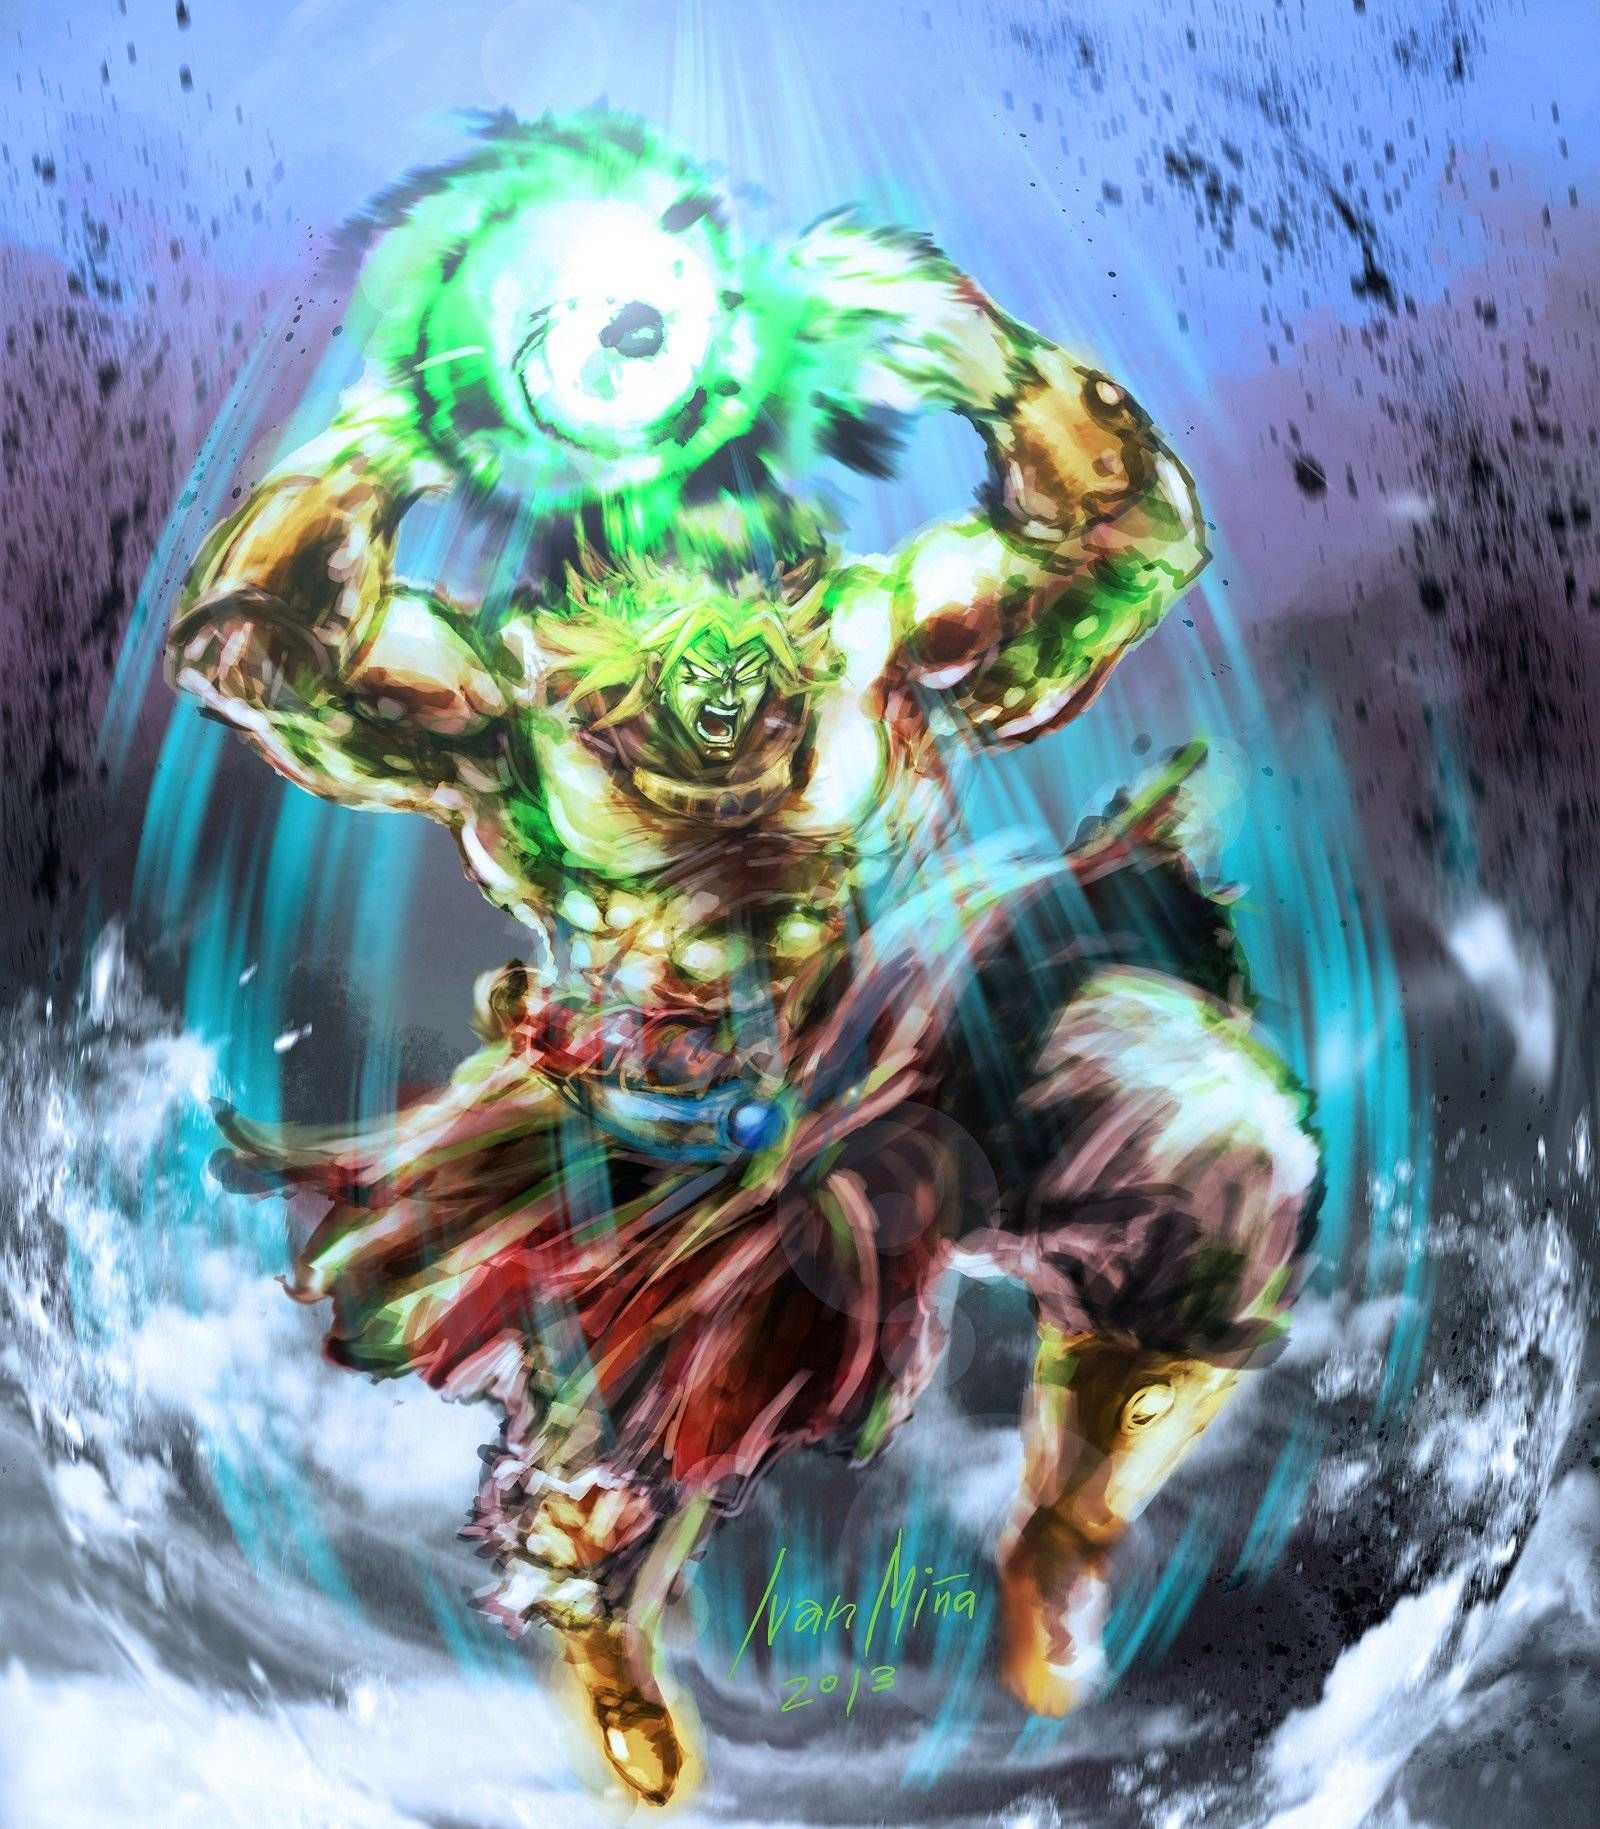 Dragon Ball Z Broly Wallpaper Mobile 3yakp With Images Dragon